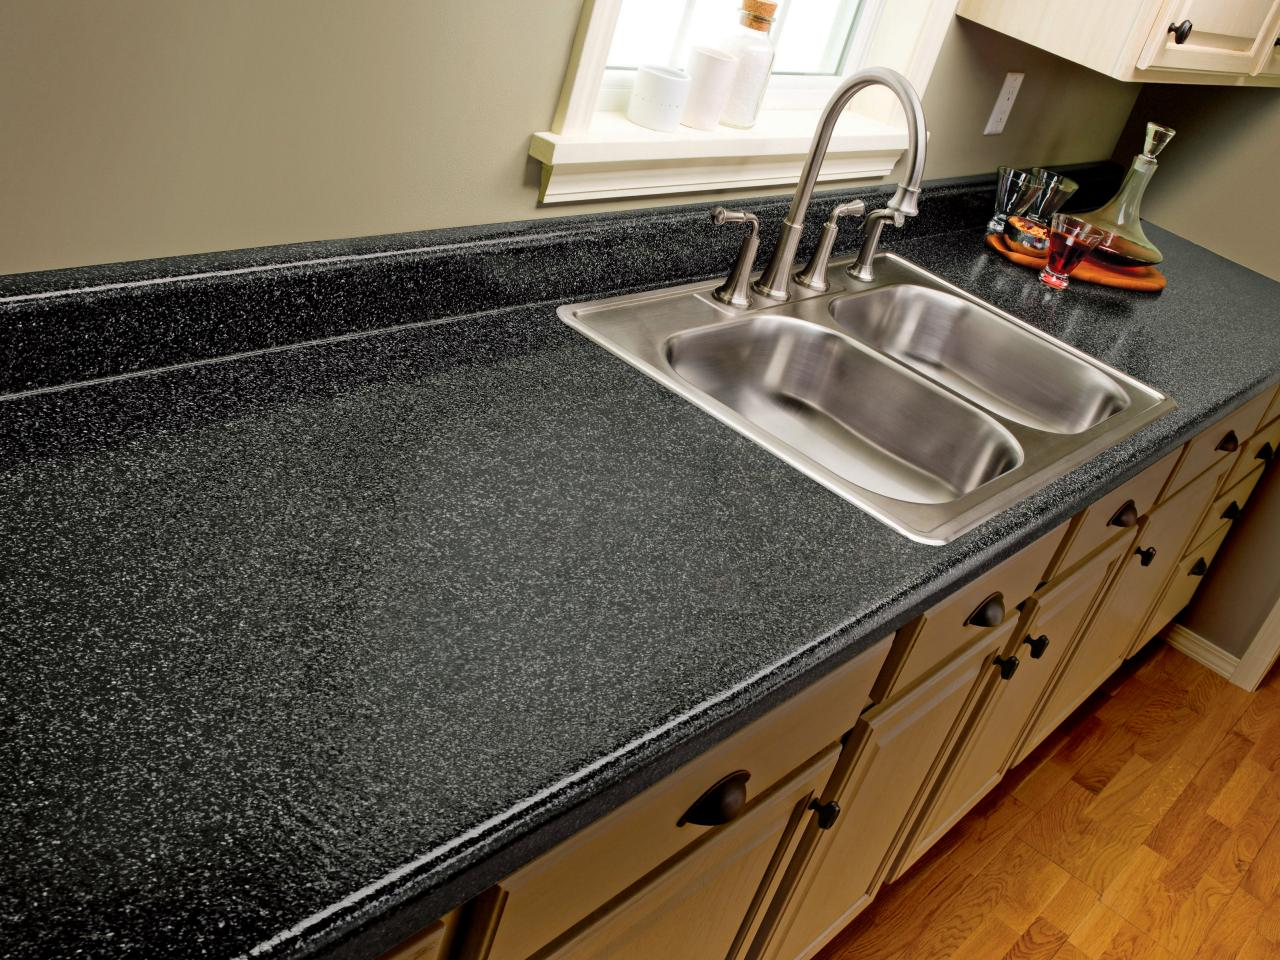 Paint For Countertops That Looks Like Granite Laminate Countertops That Look Like Granite Laminate